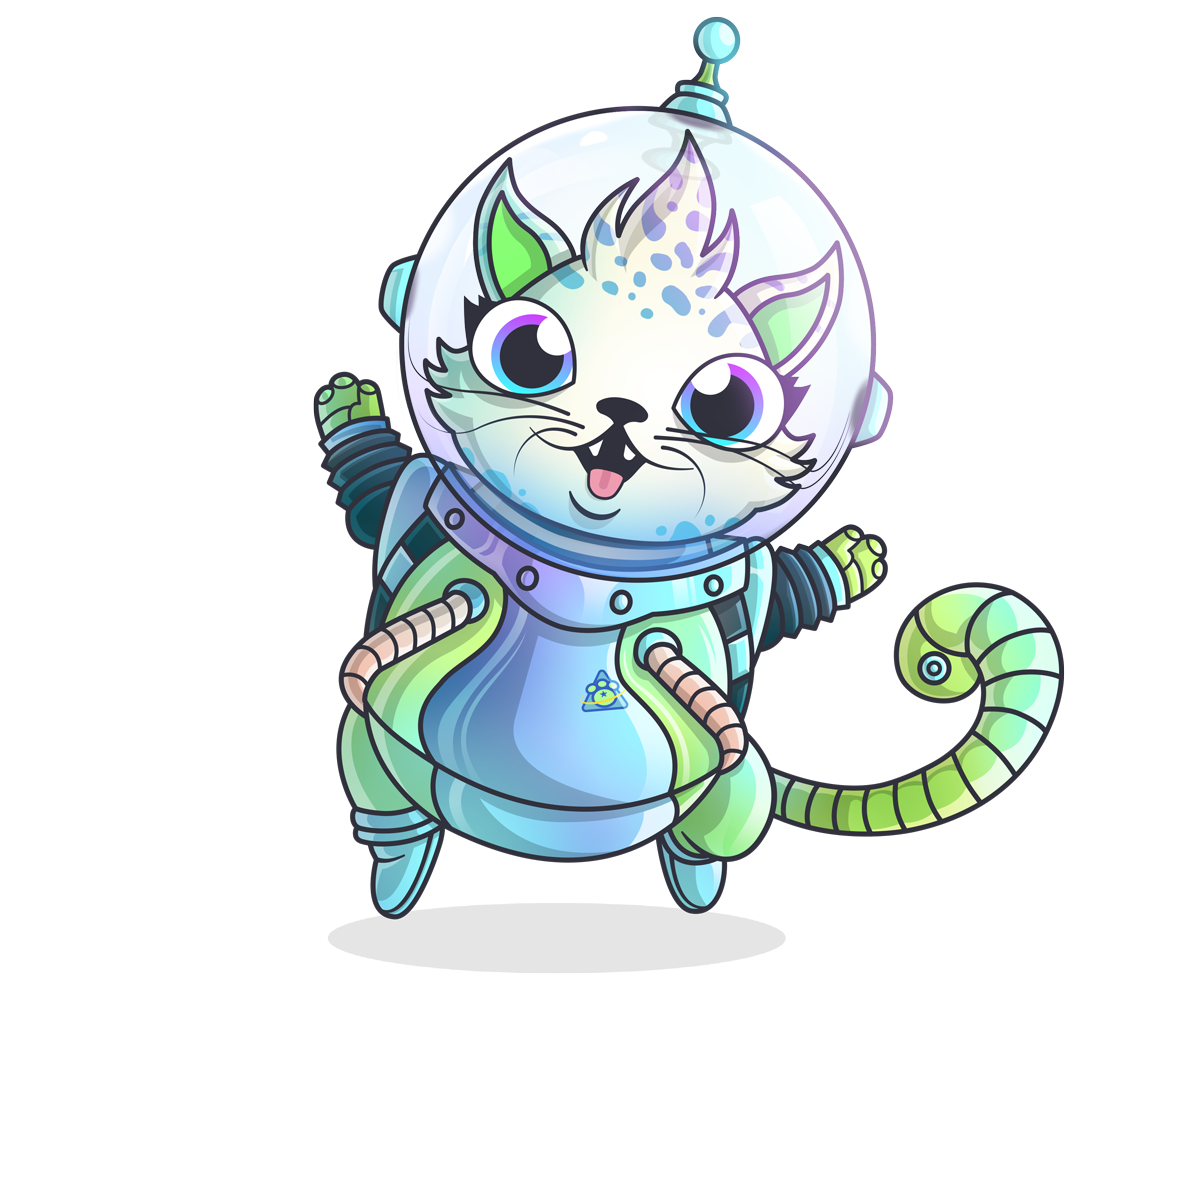 cryptokitty #1819961